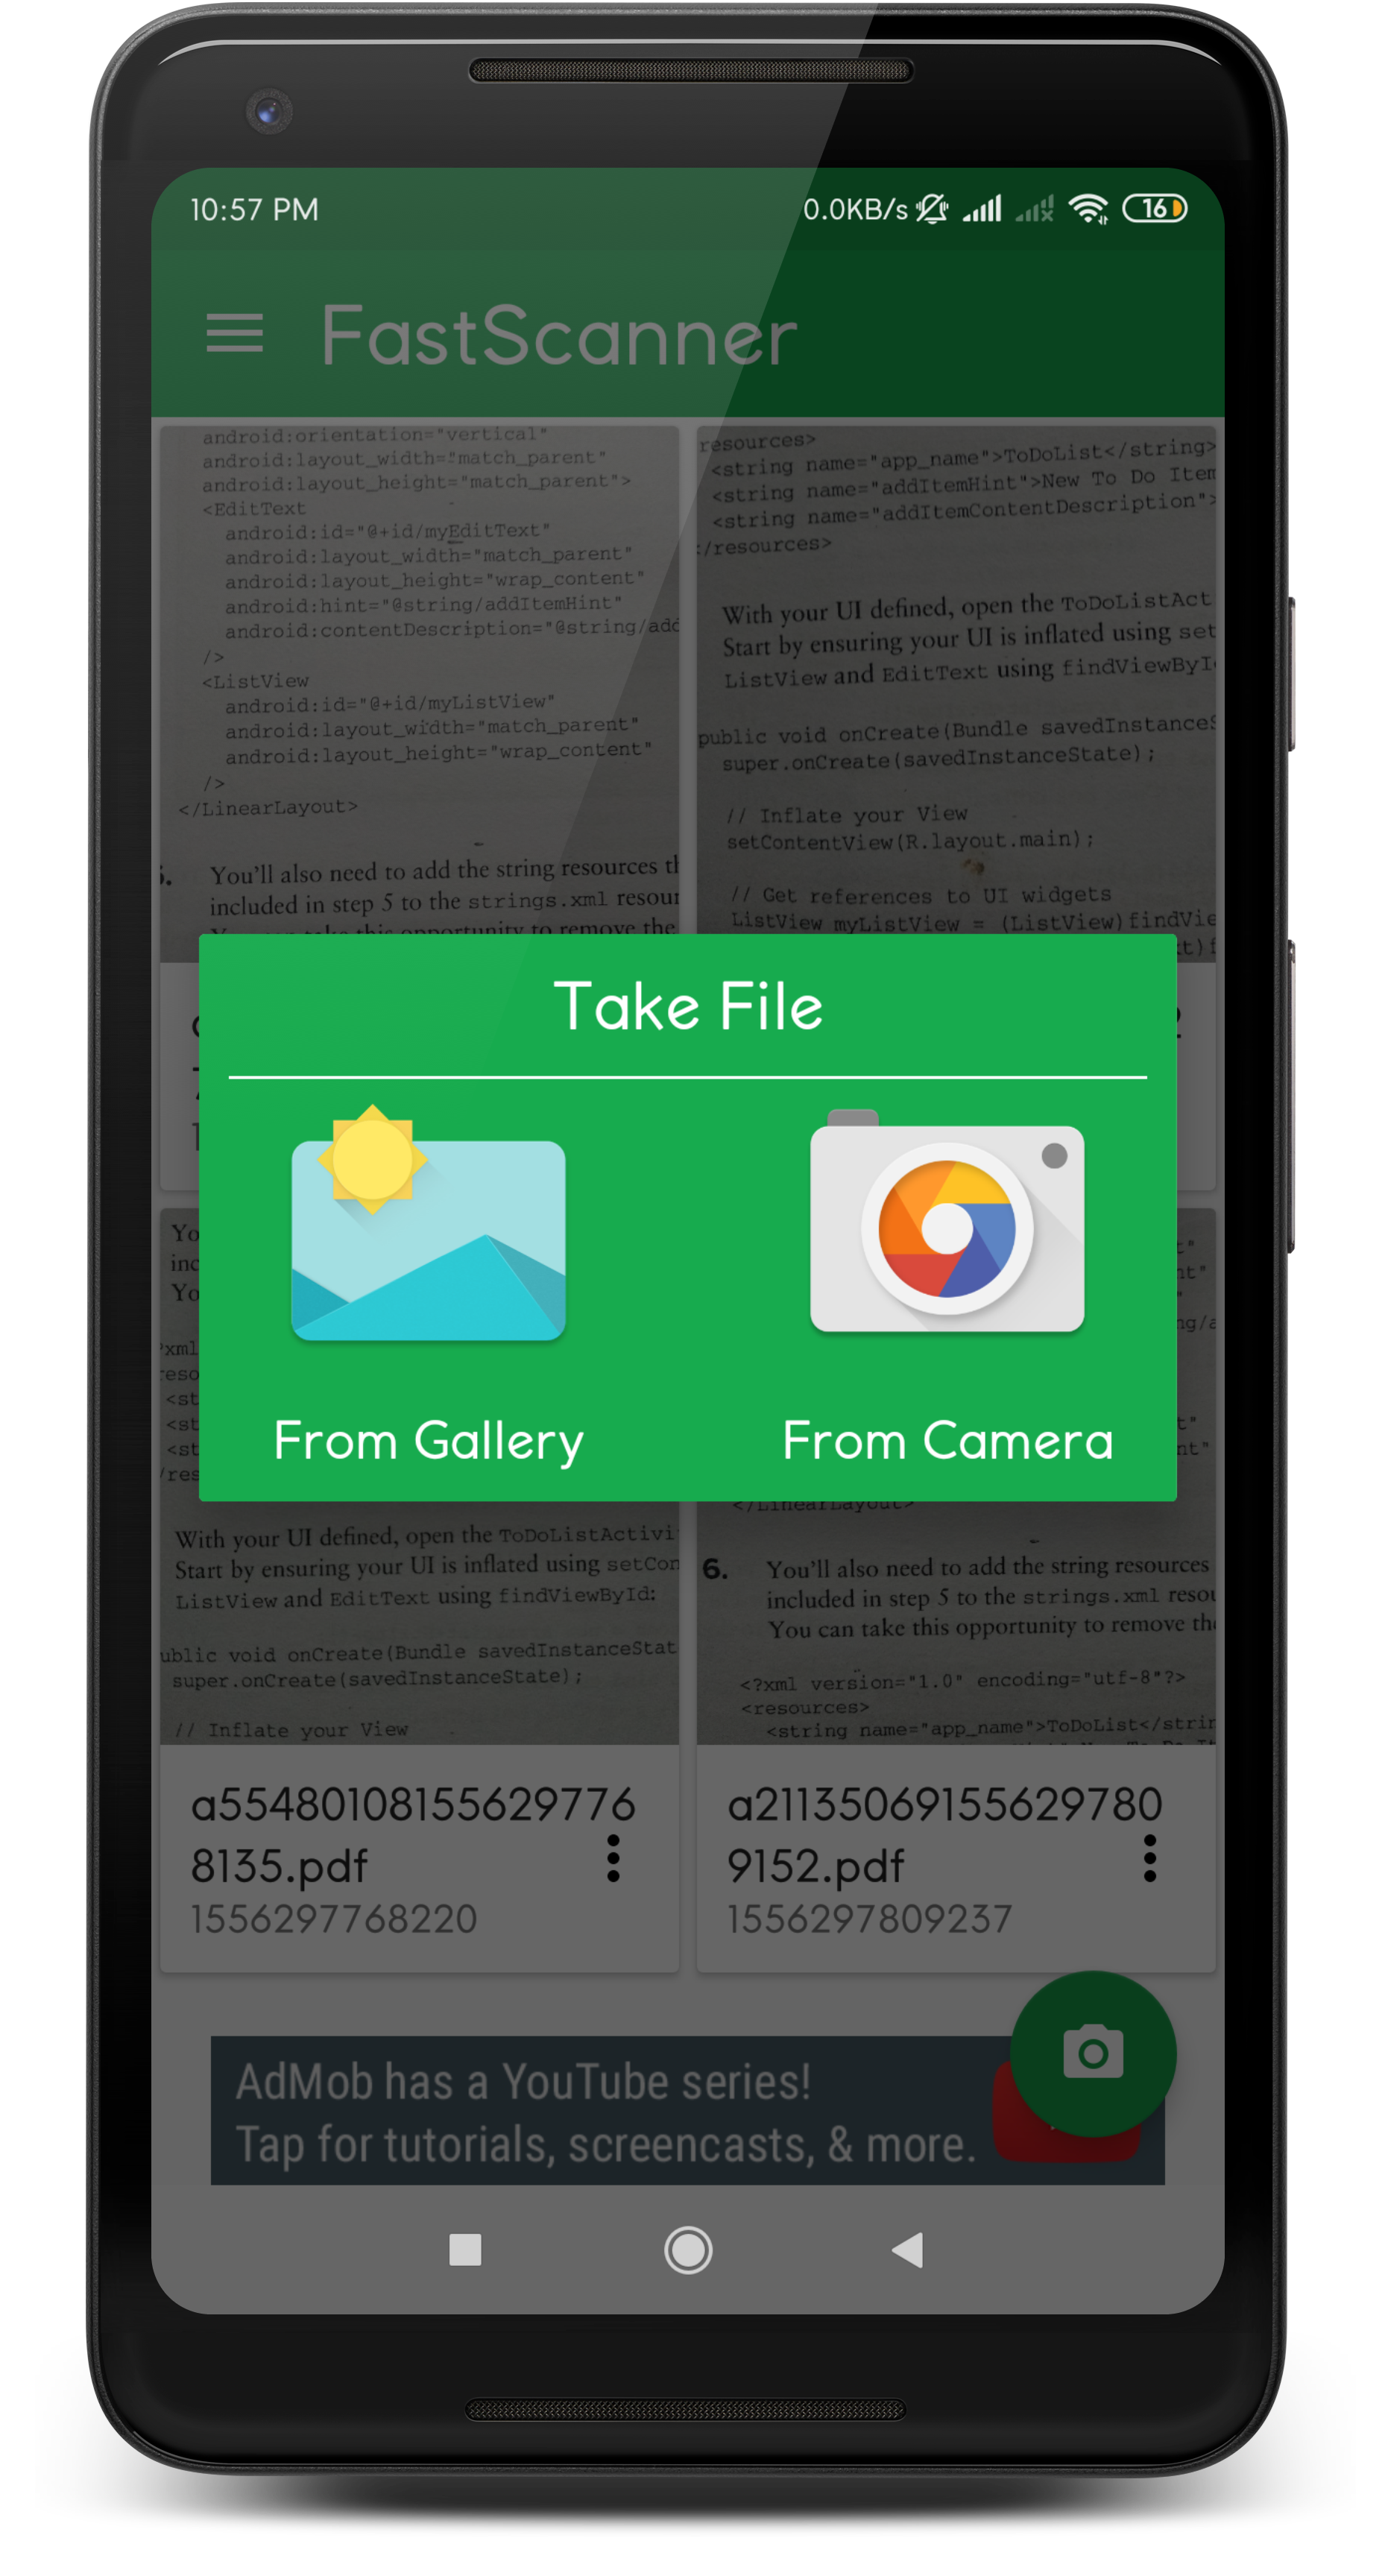 Fast Scanner For Android with Admob